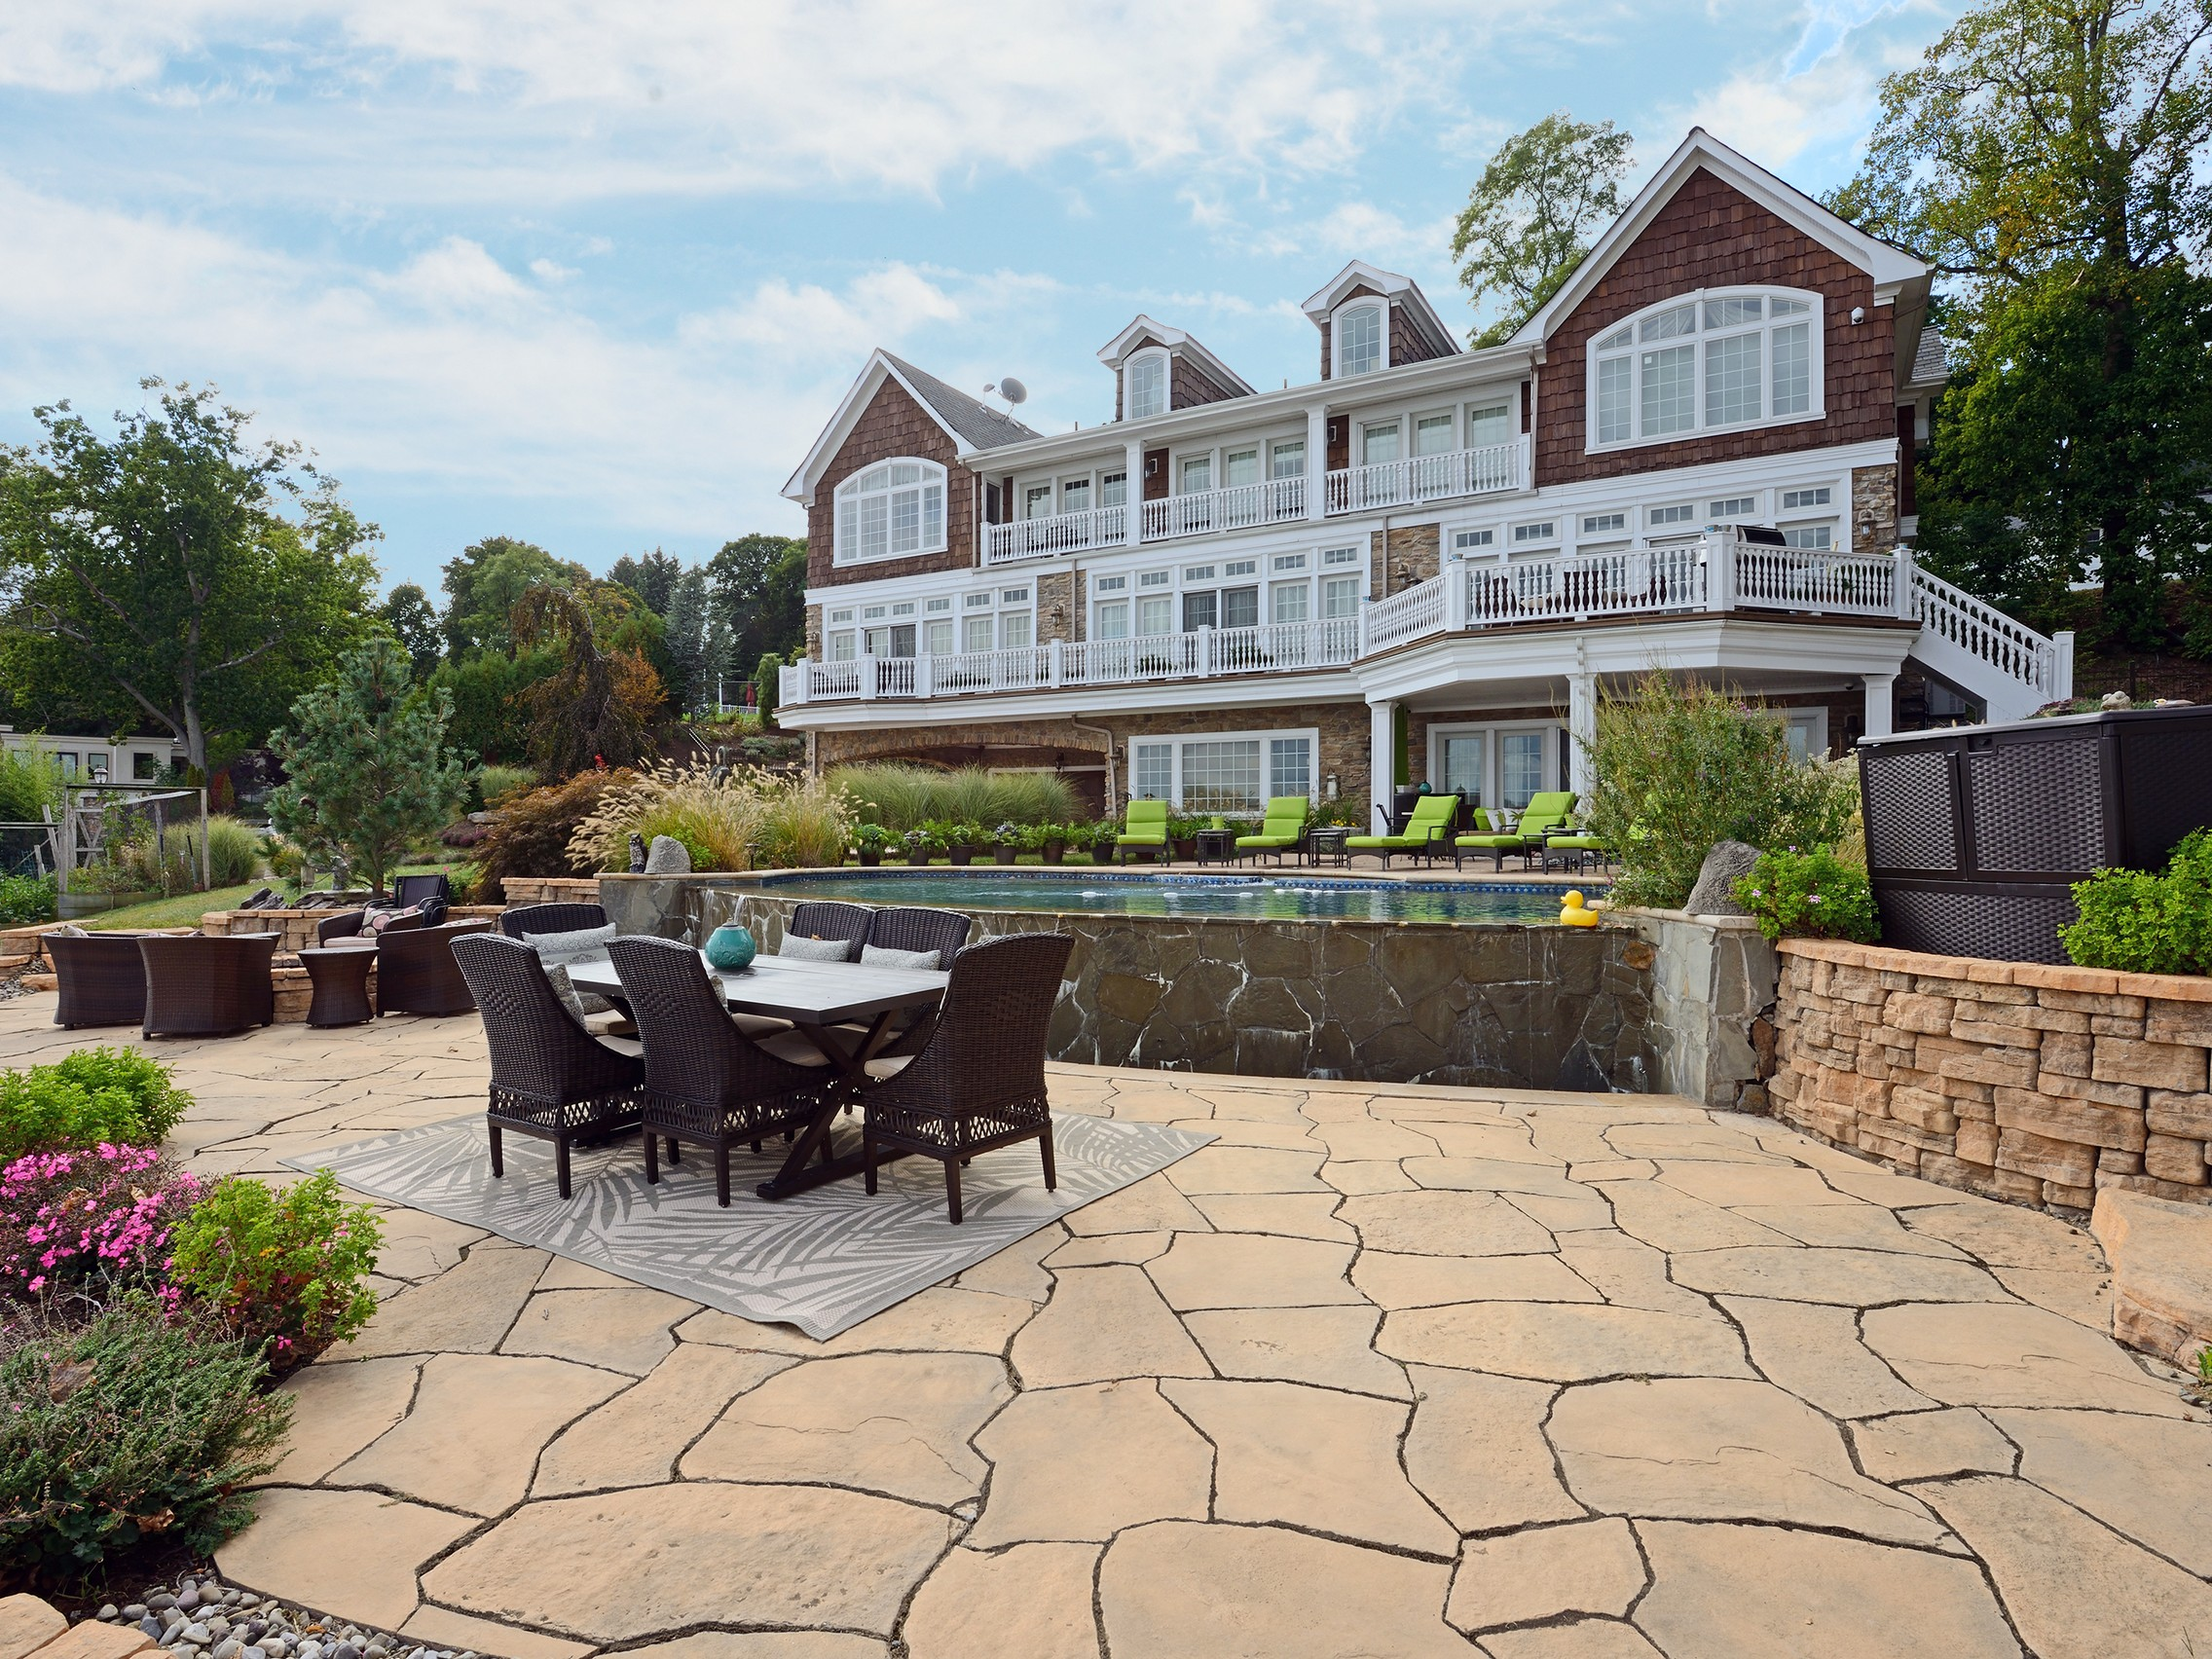 Maison unifamiliale pour l Vente à Oasis on the Hudson 617 North Broadway Upper Nyack, New York, 10960 États-Unis